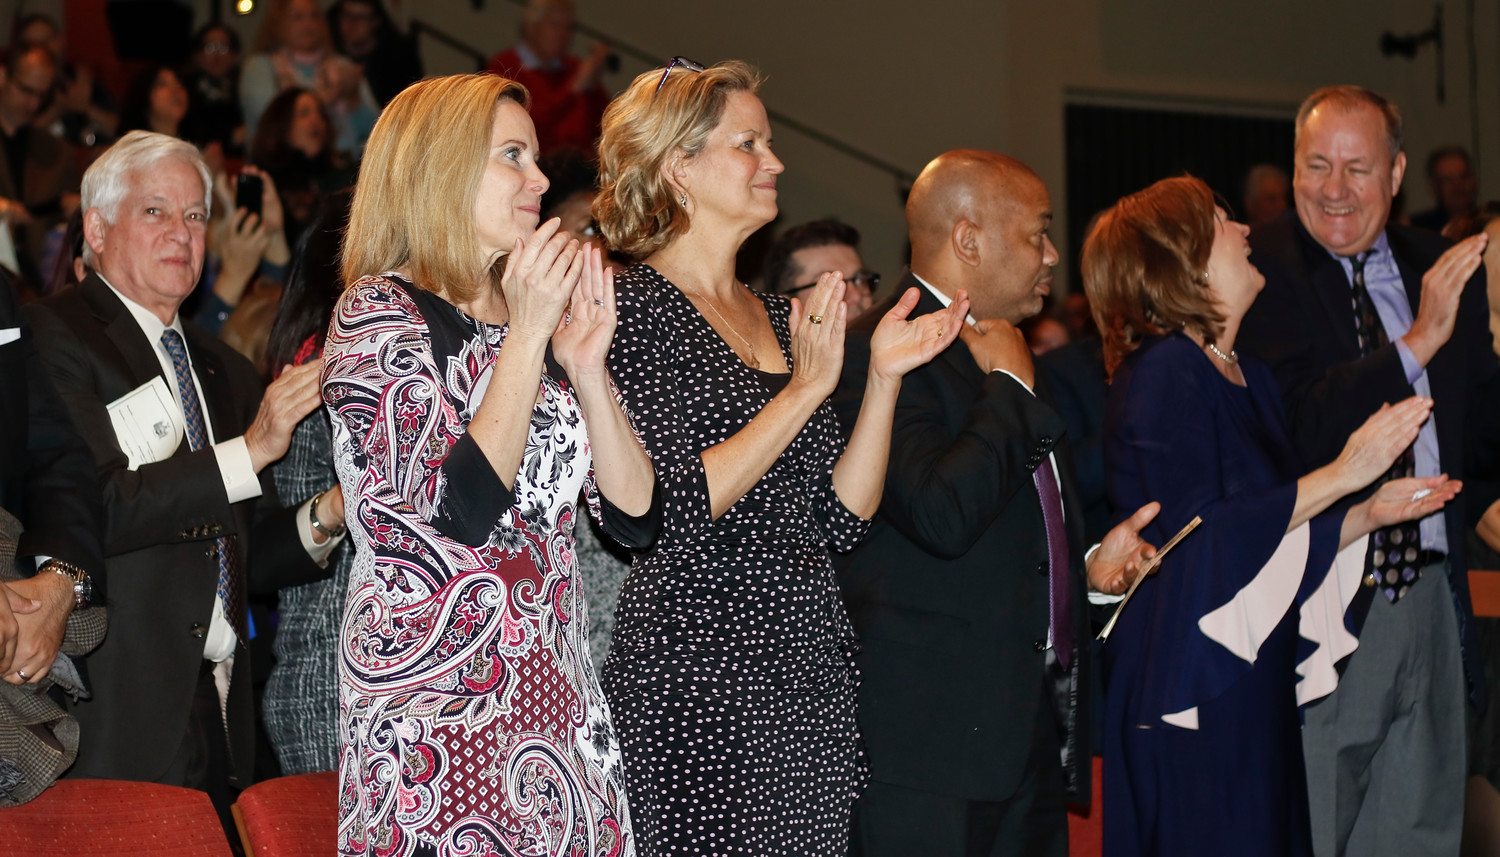 Hempstead Town Supervisor Laura Gillen and Nassau County Executive Laura Curran were among those who attended.